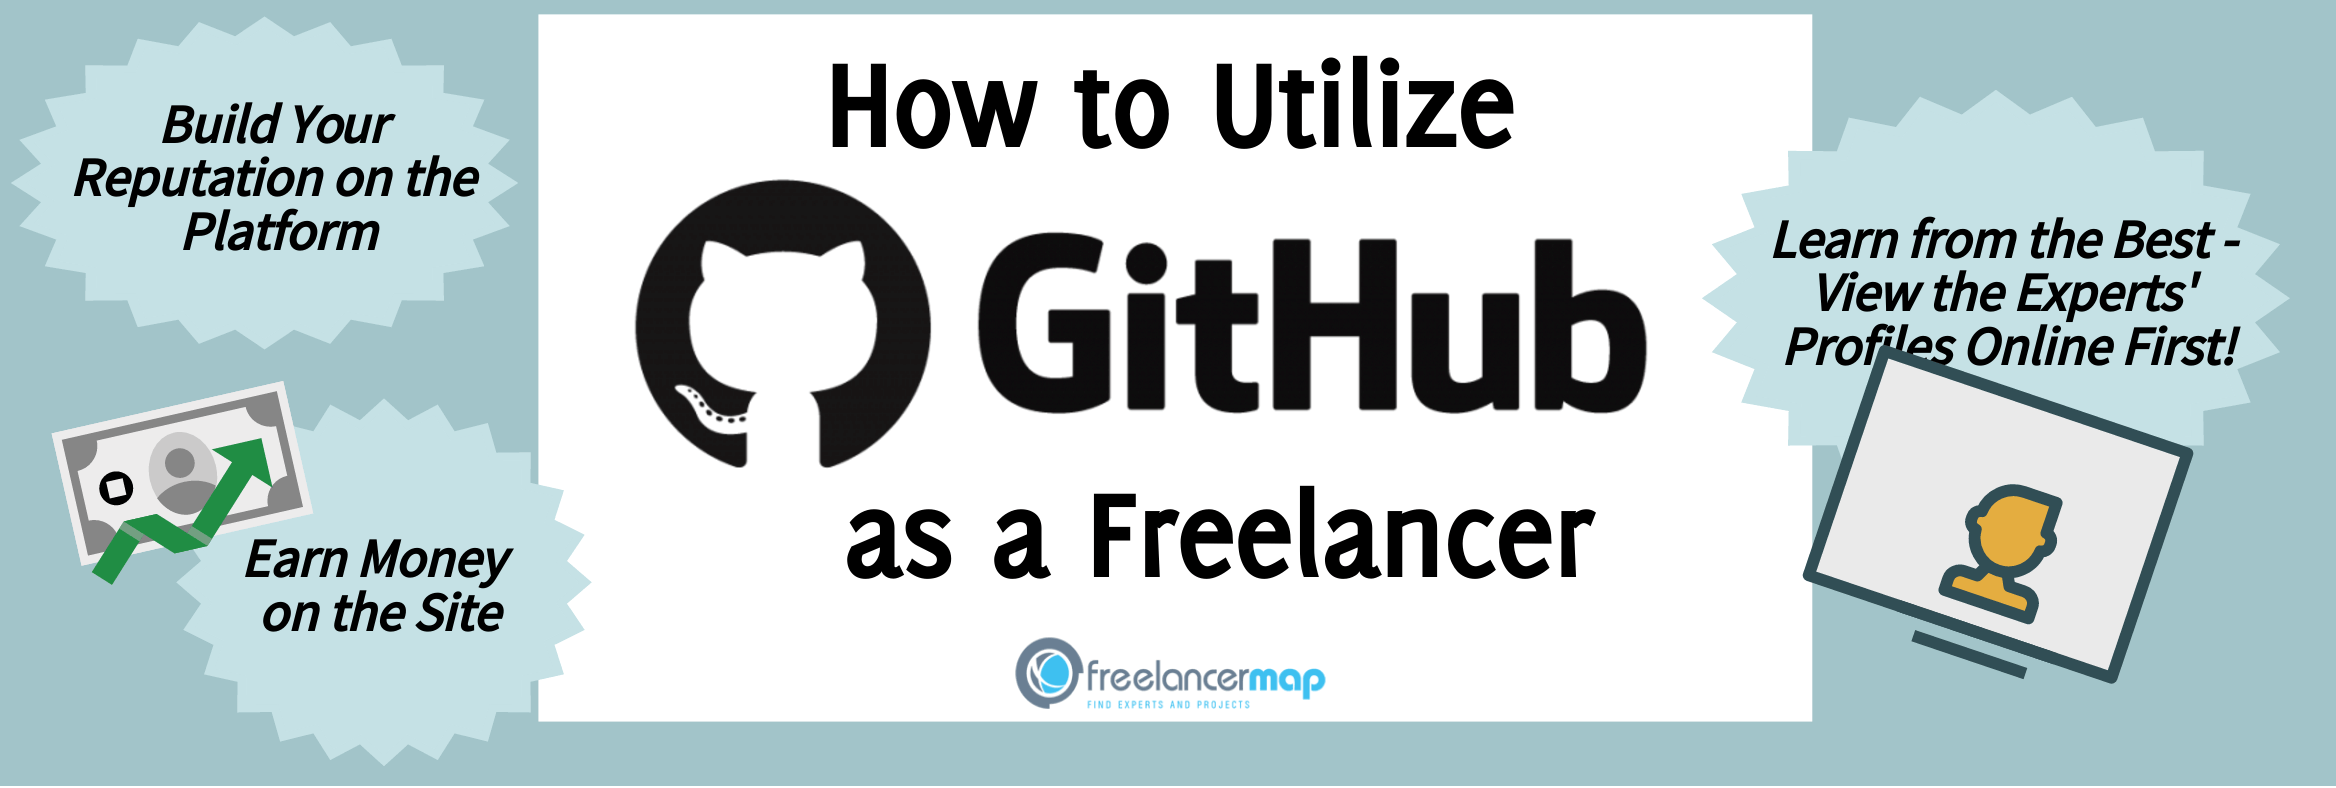 How to use GitHub as a Freelance Developer